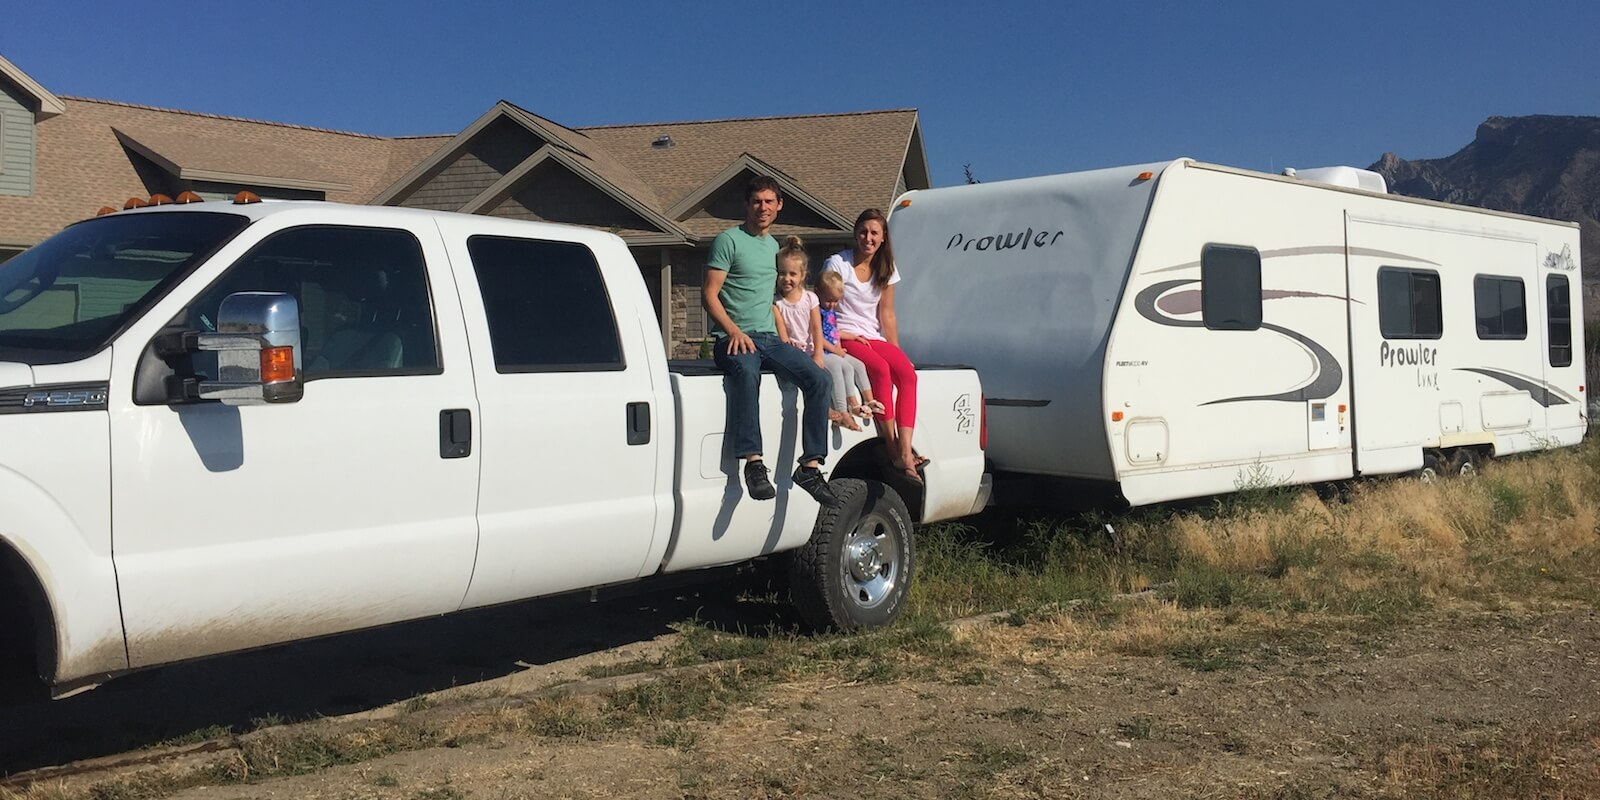 Jason Byer, a digital nomad on a remote work road trip with his family